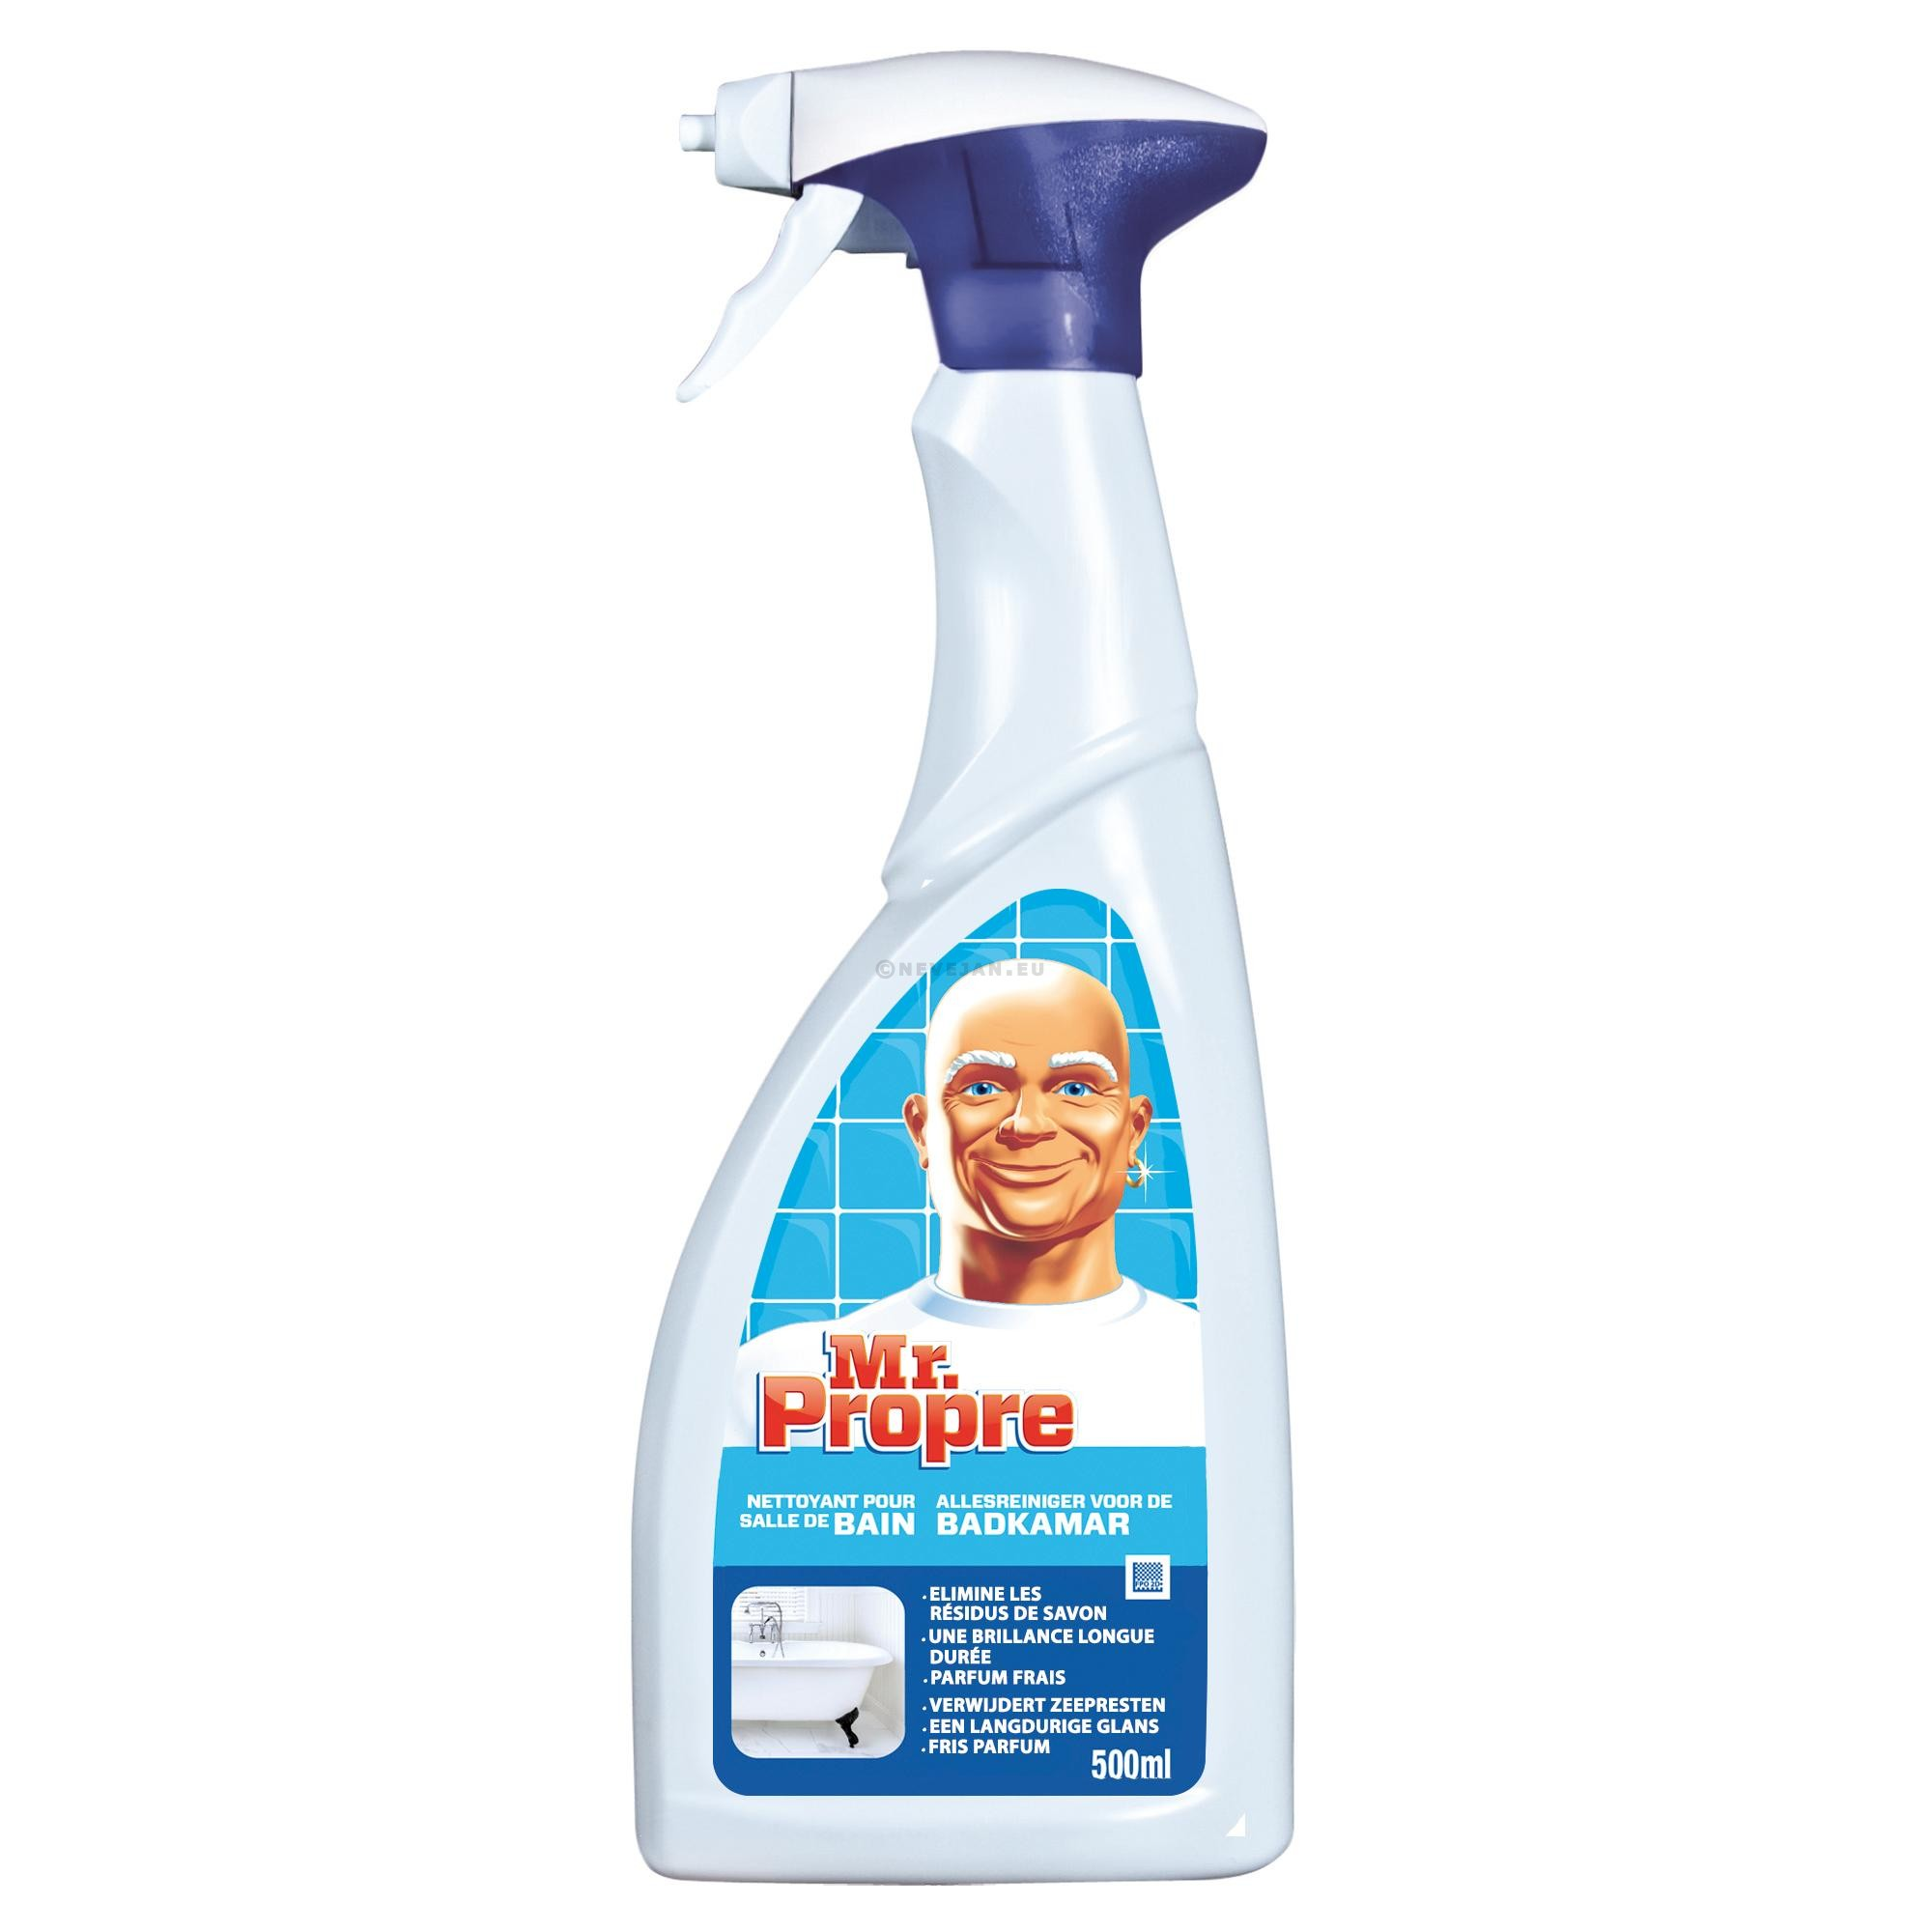 Mr.Proper Badkamer 700ml sanitair spray P&G Professional